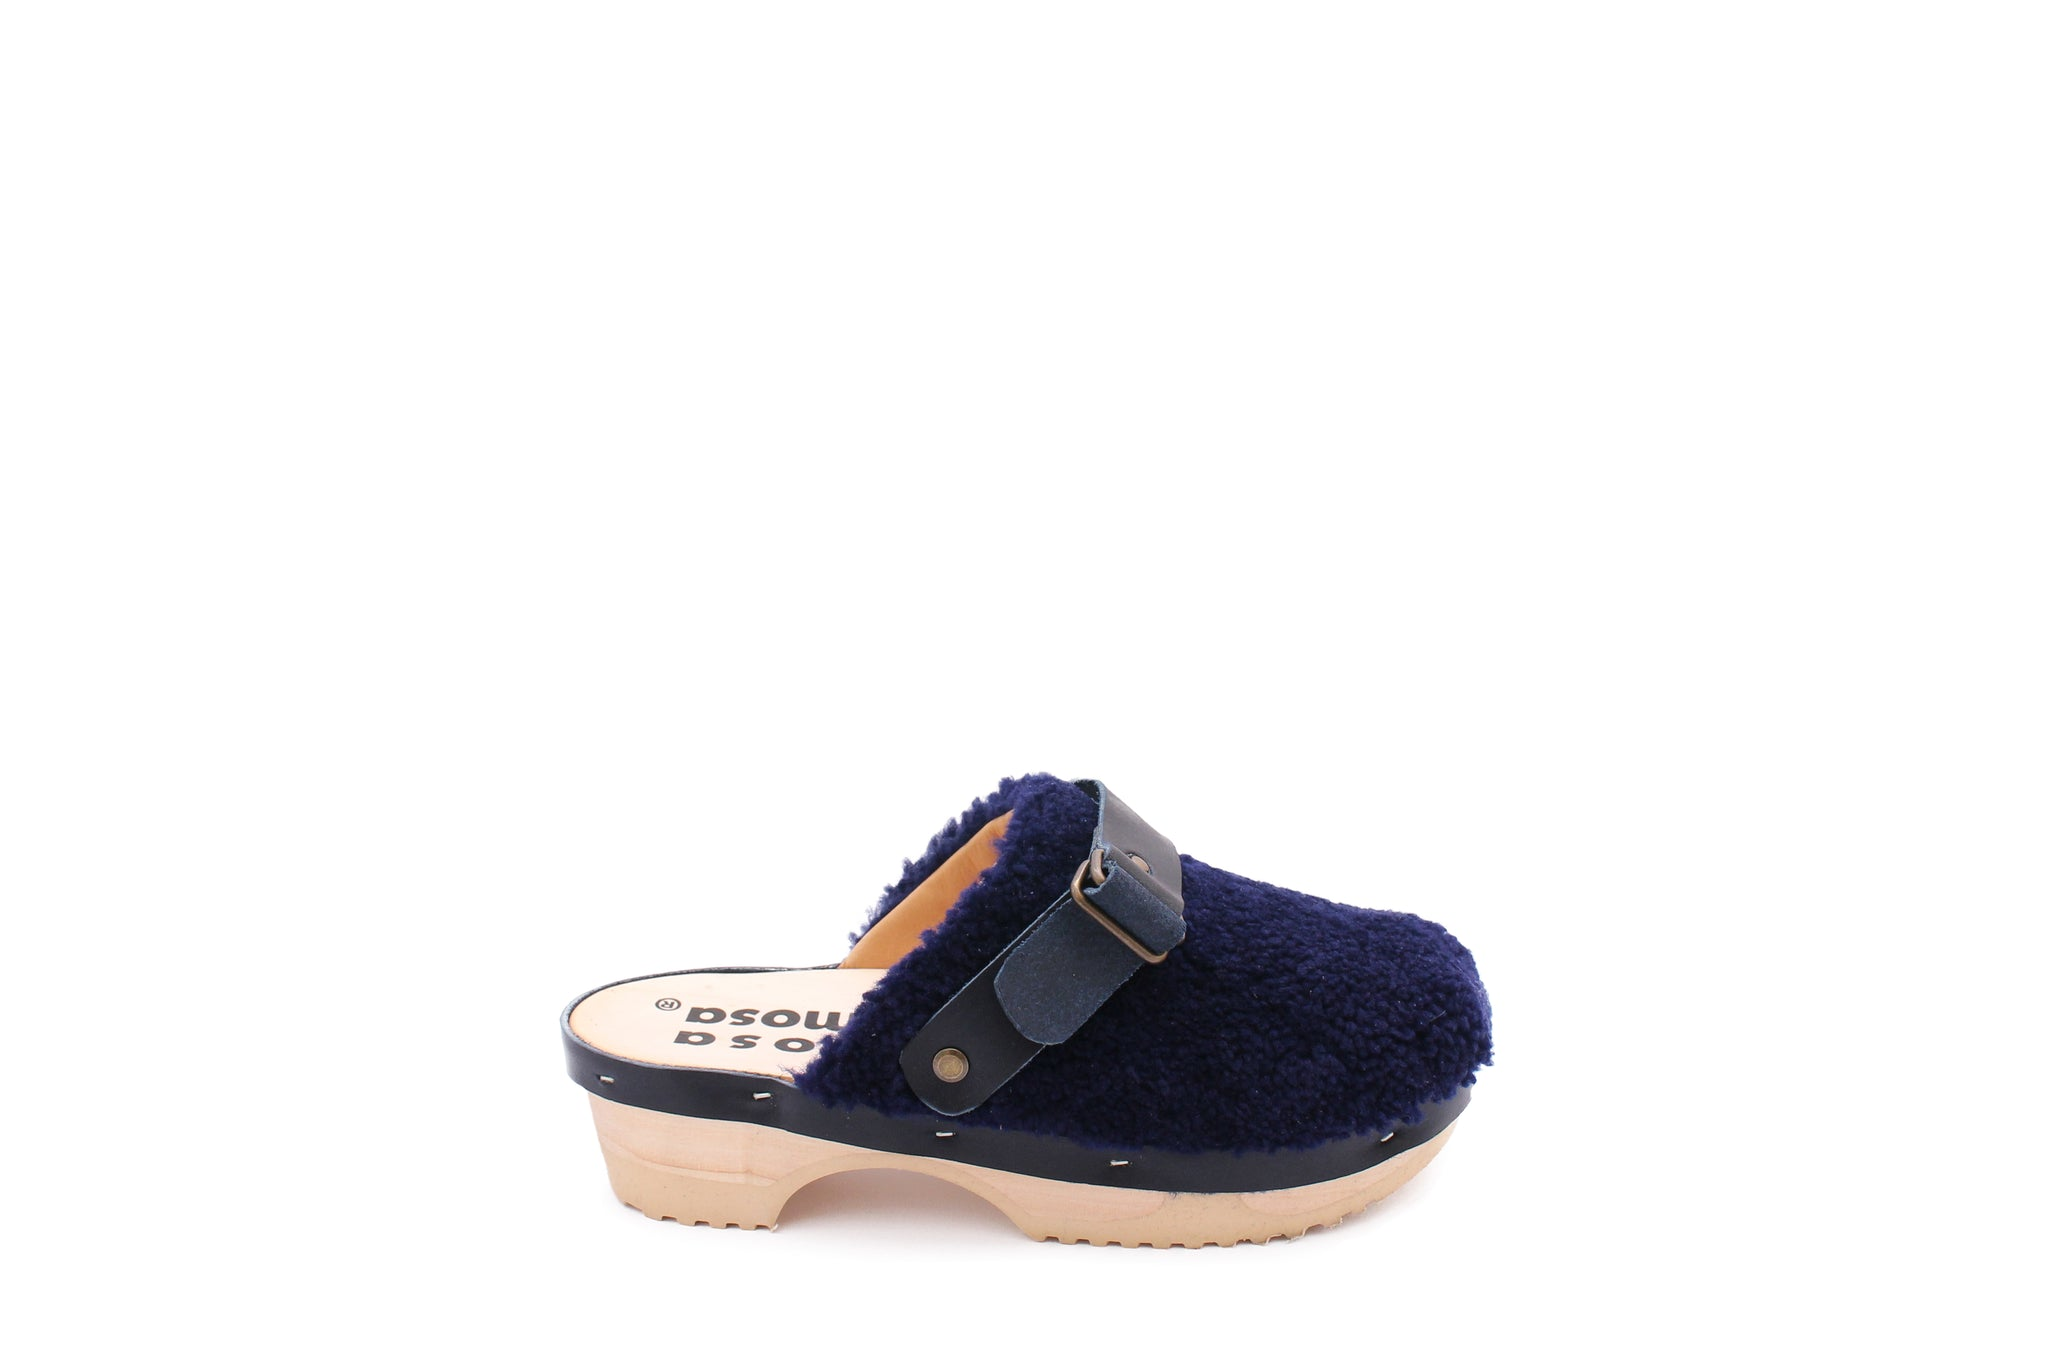 PANTOFFLE CURLY STRAP NAVY